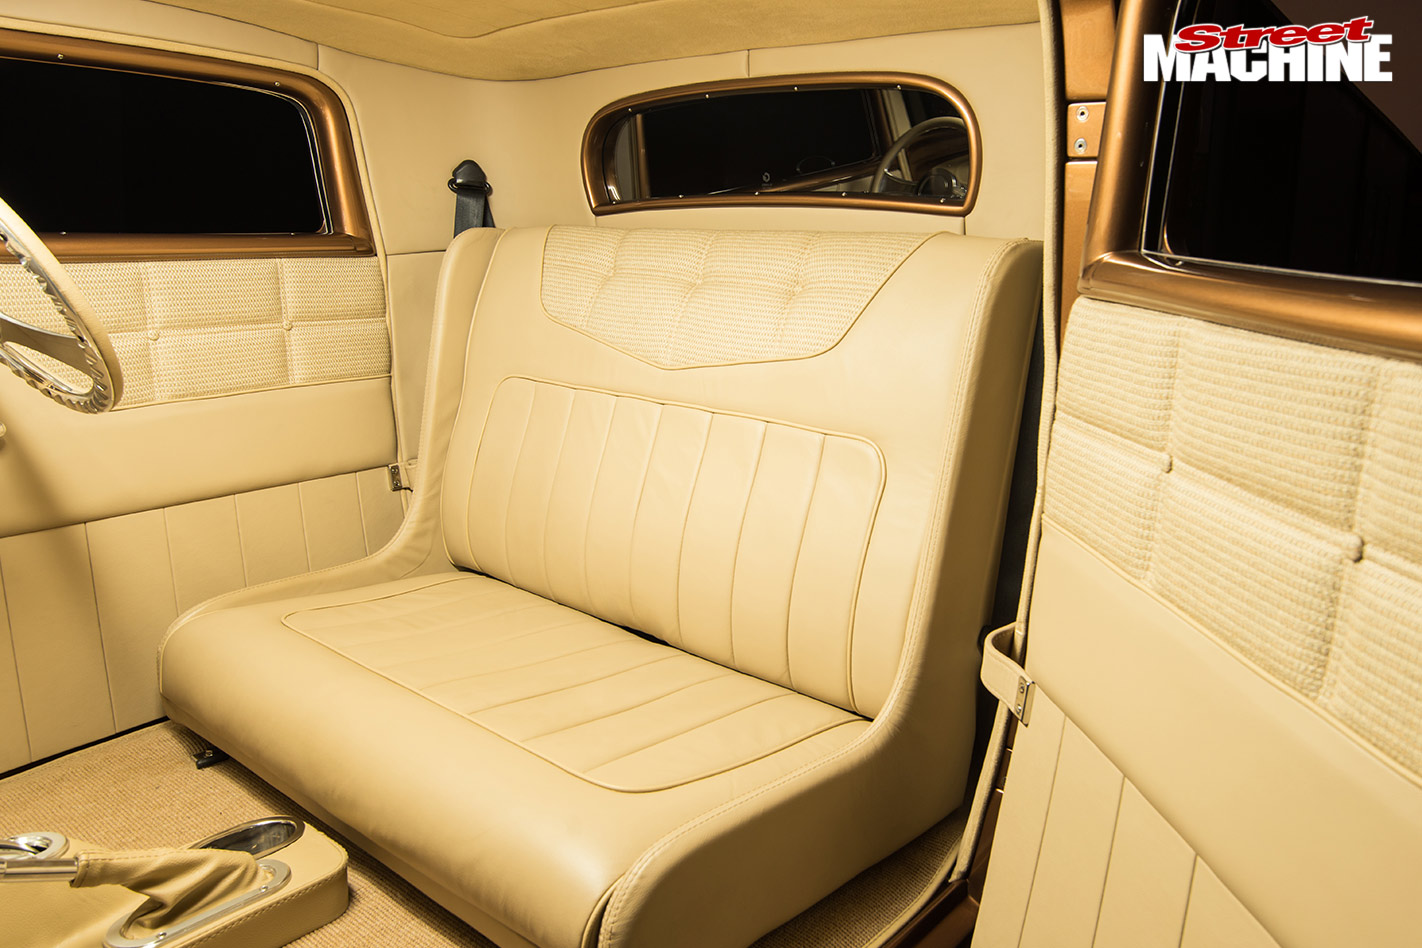 Ford 32 coupe interior